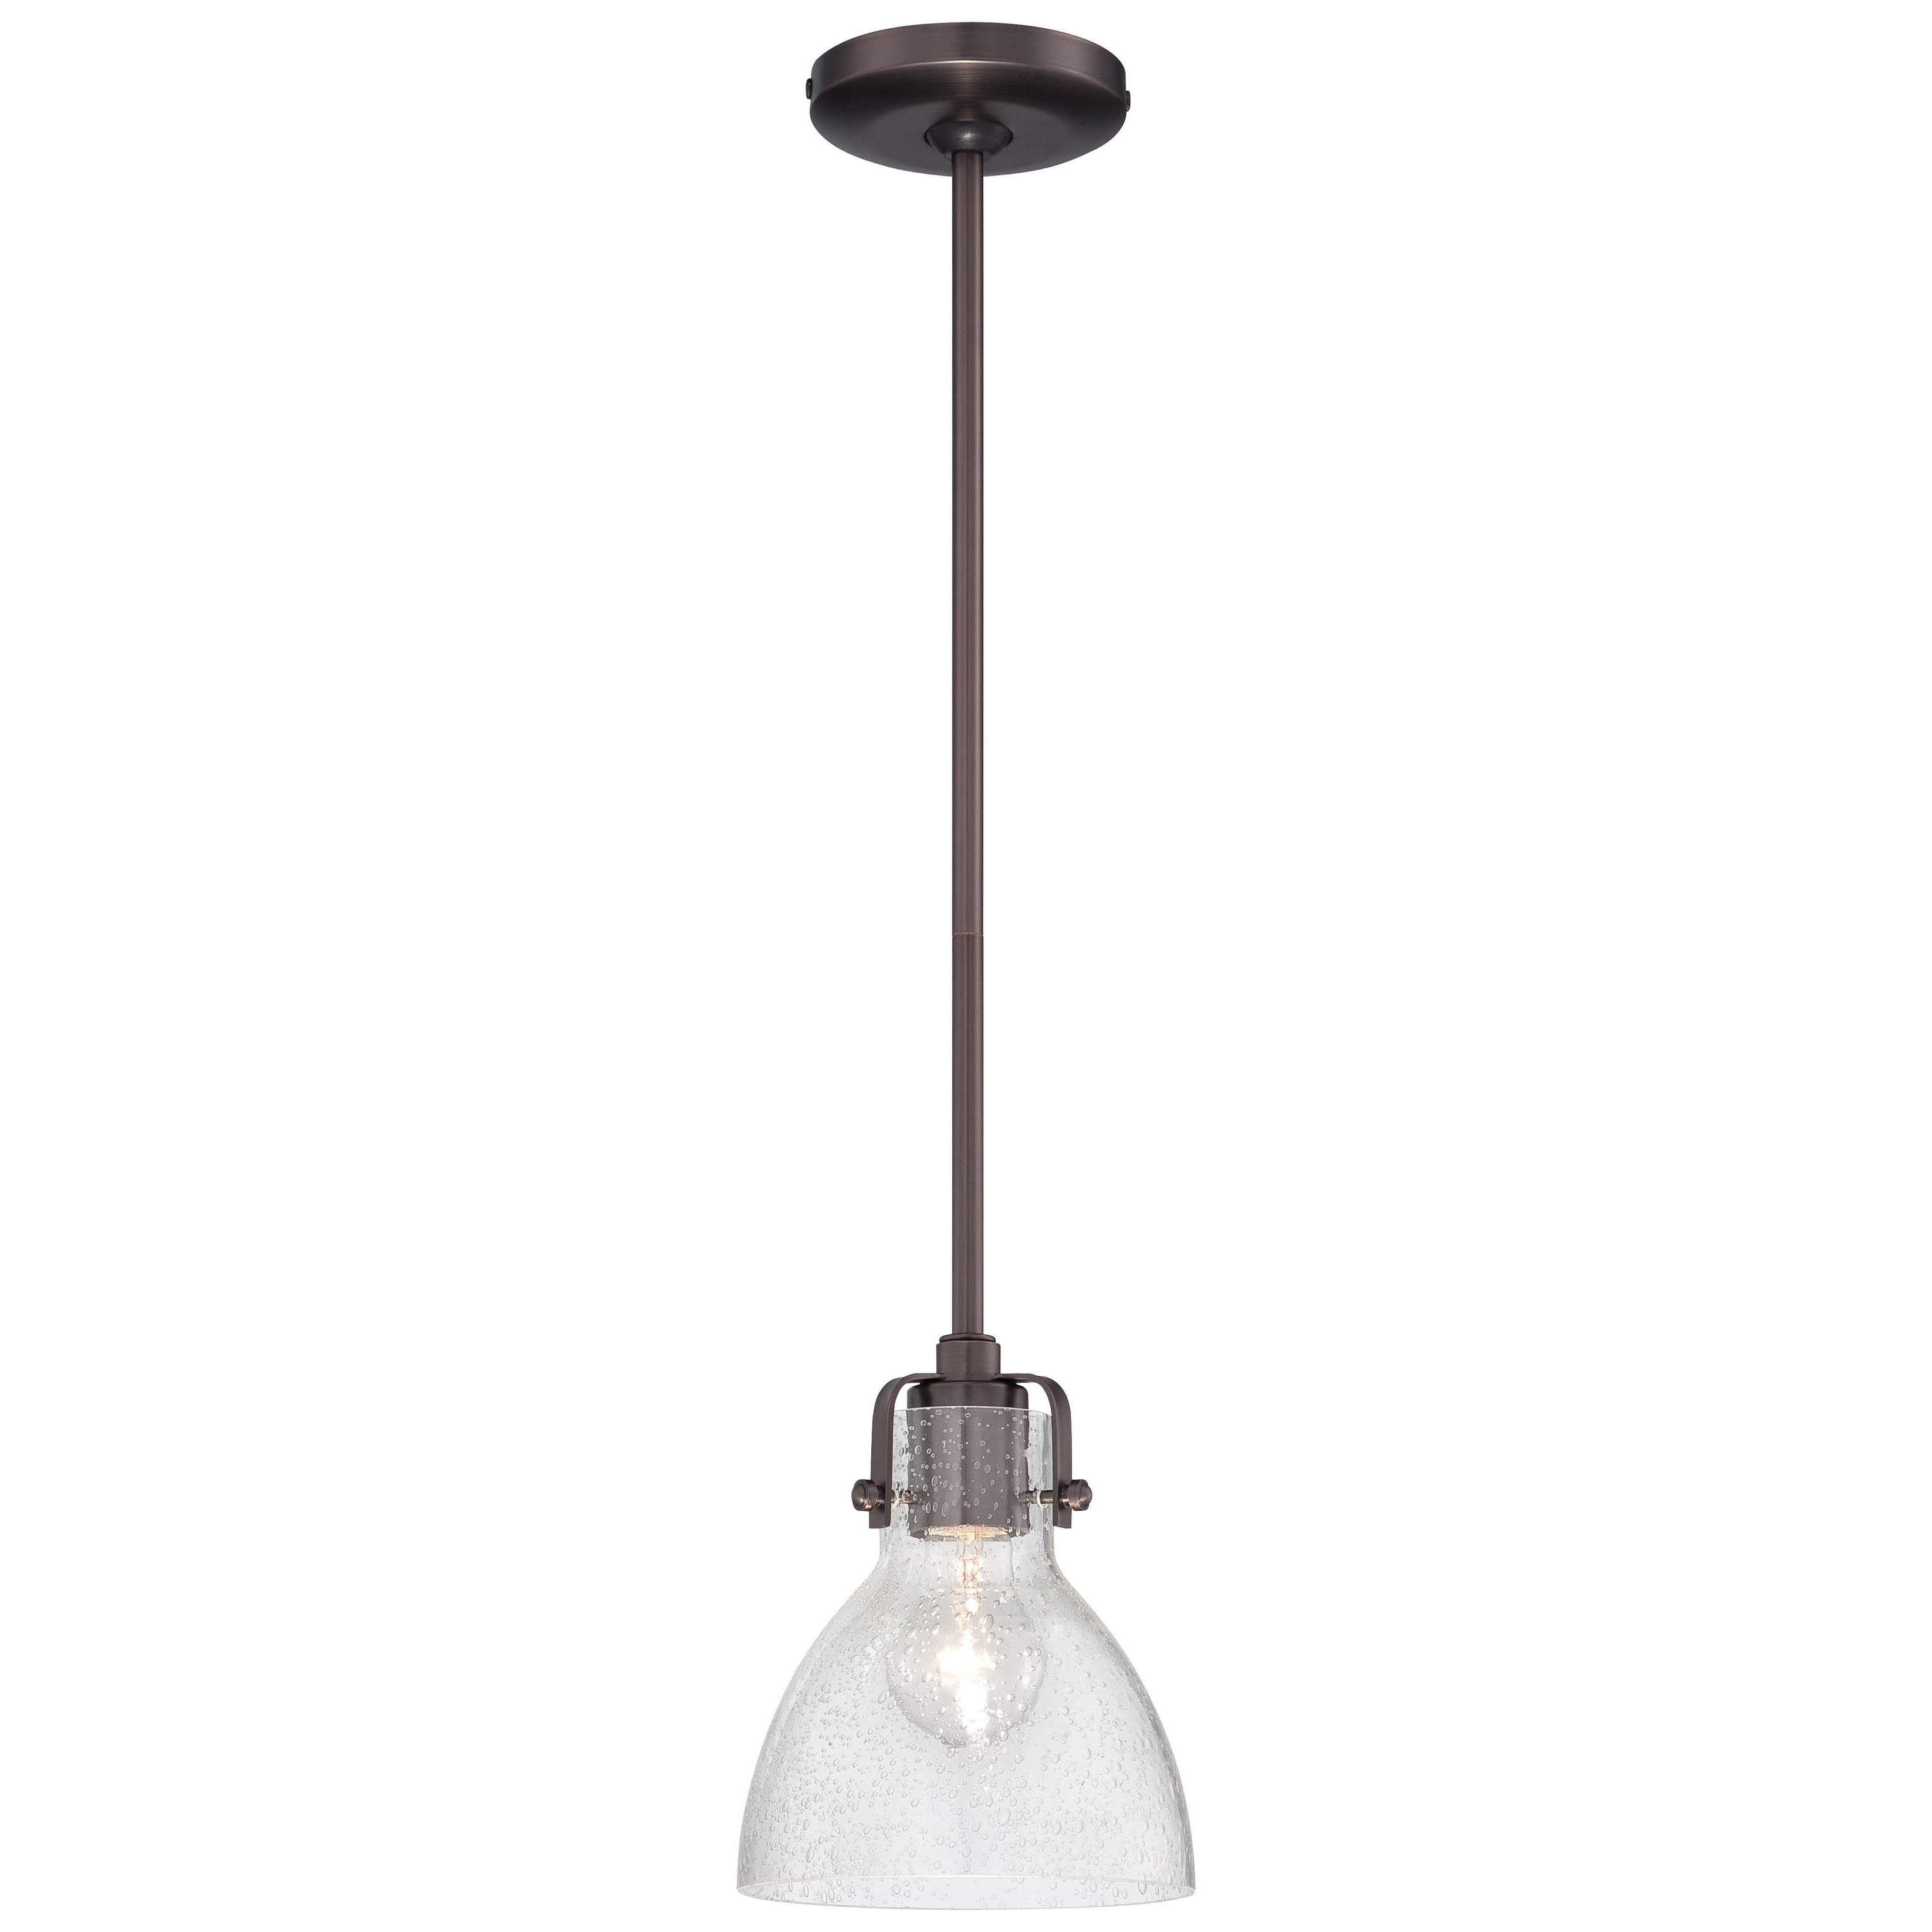 Andover Mills Goldie 1 Light Single Bell Pendant With 2020 Roslindale 1 Light Single Bell Pendants (Gallery 9 of 20)